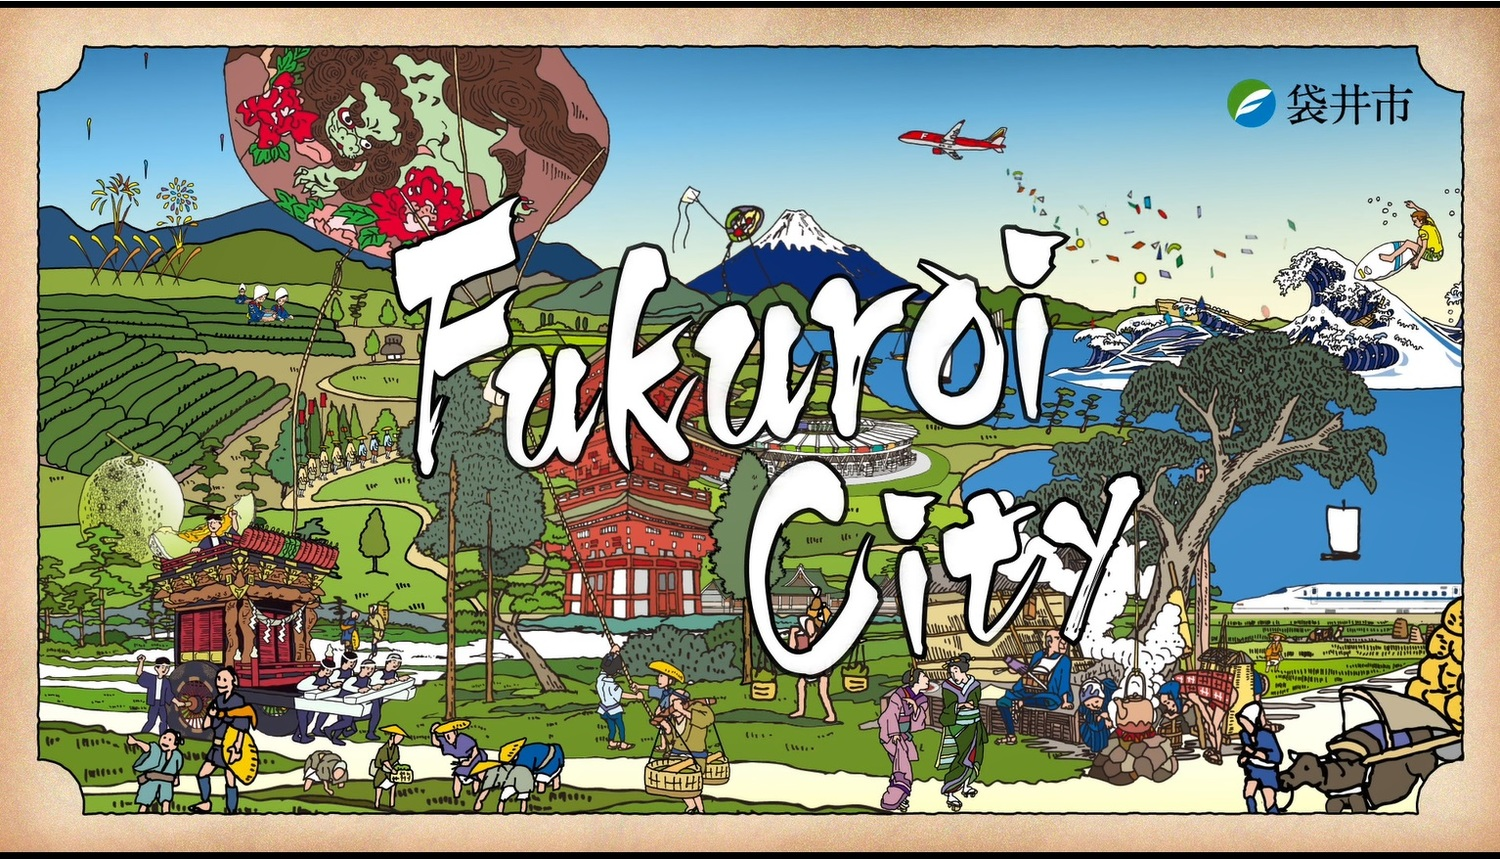 【静岡県袋井市】This is Fukuroi City